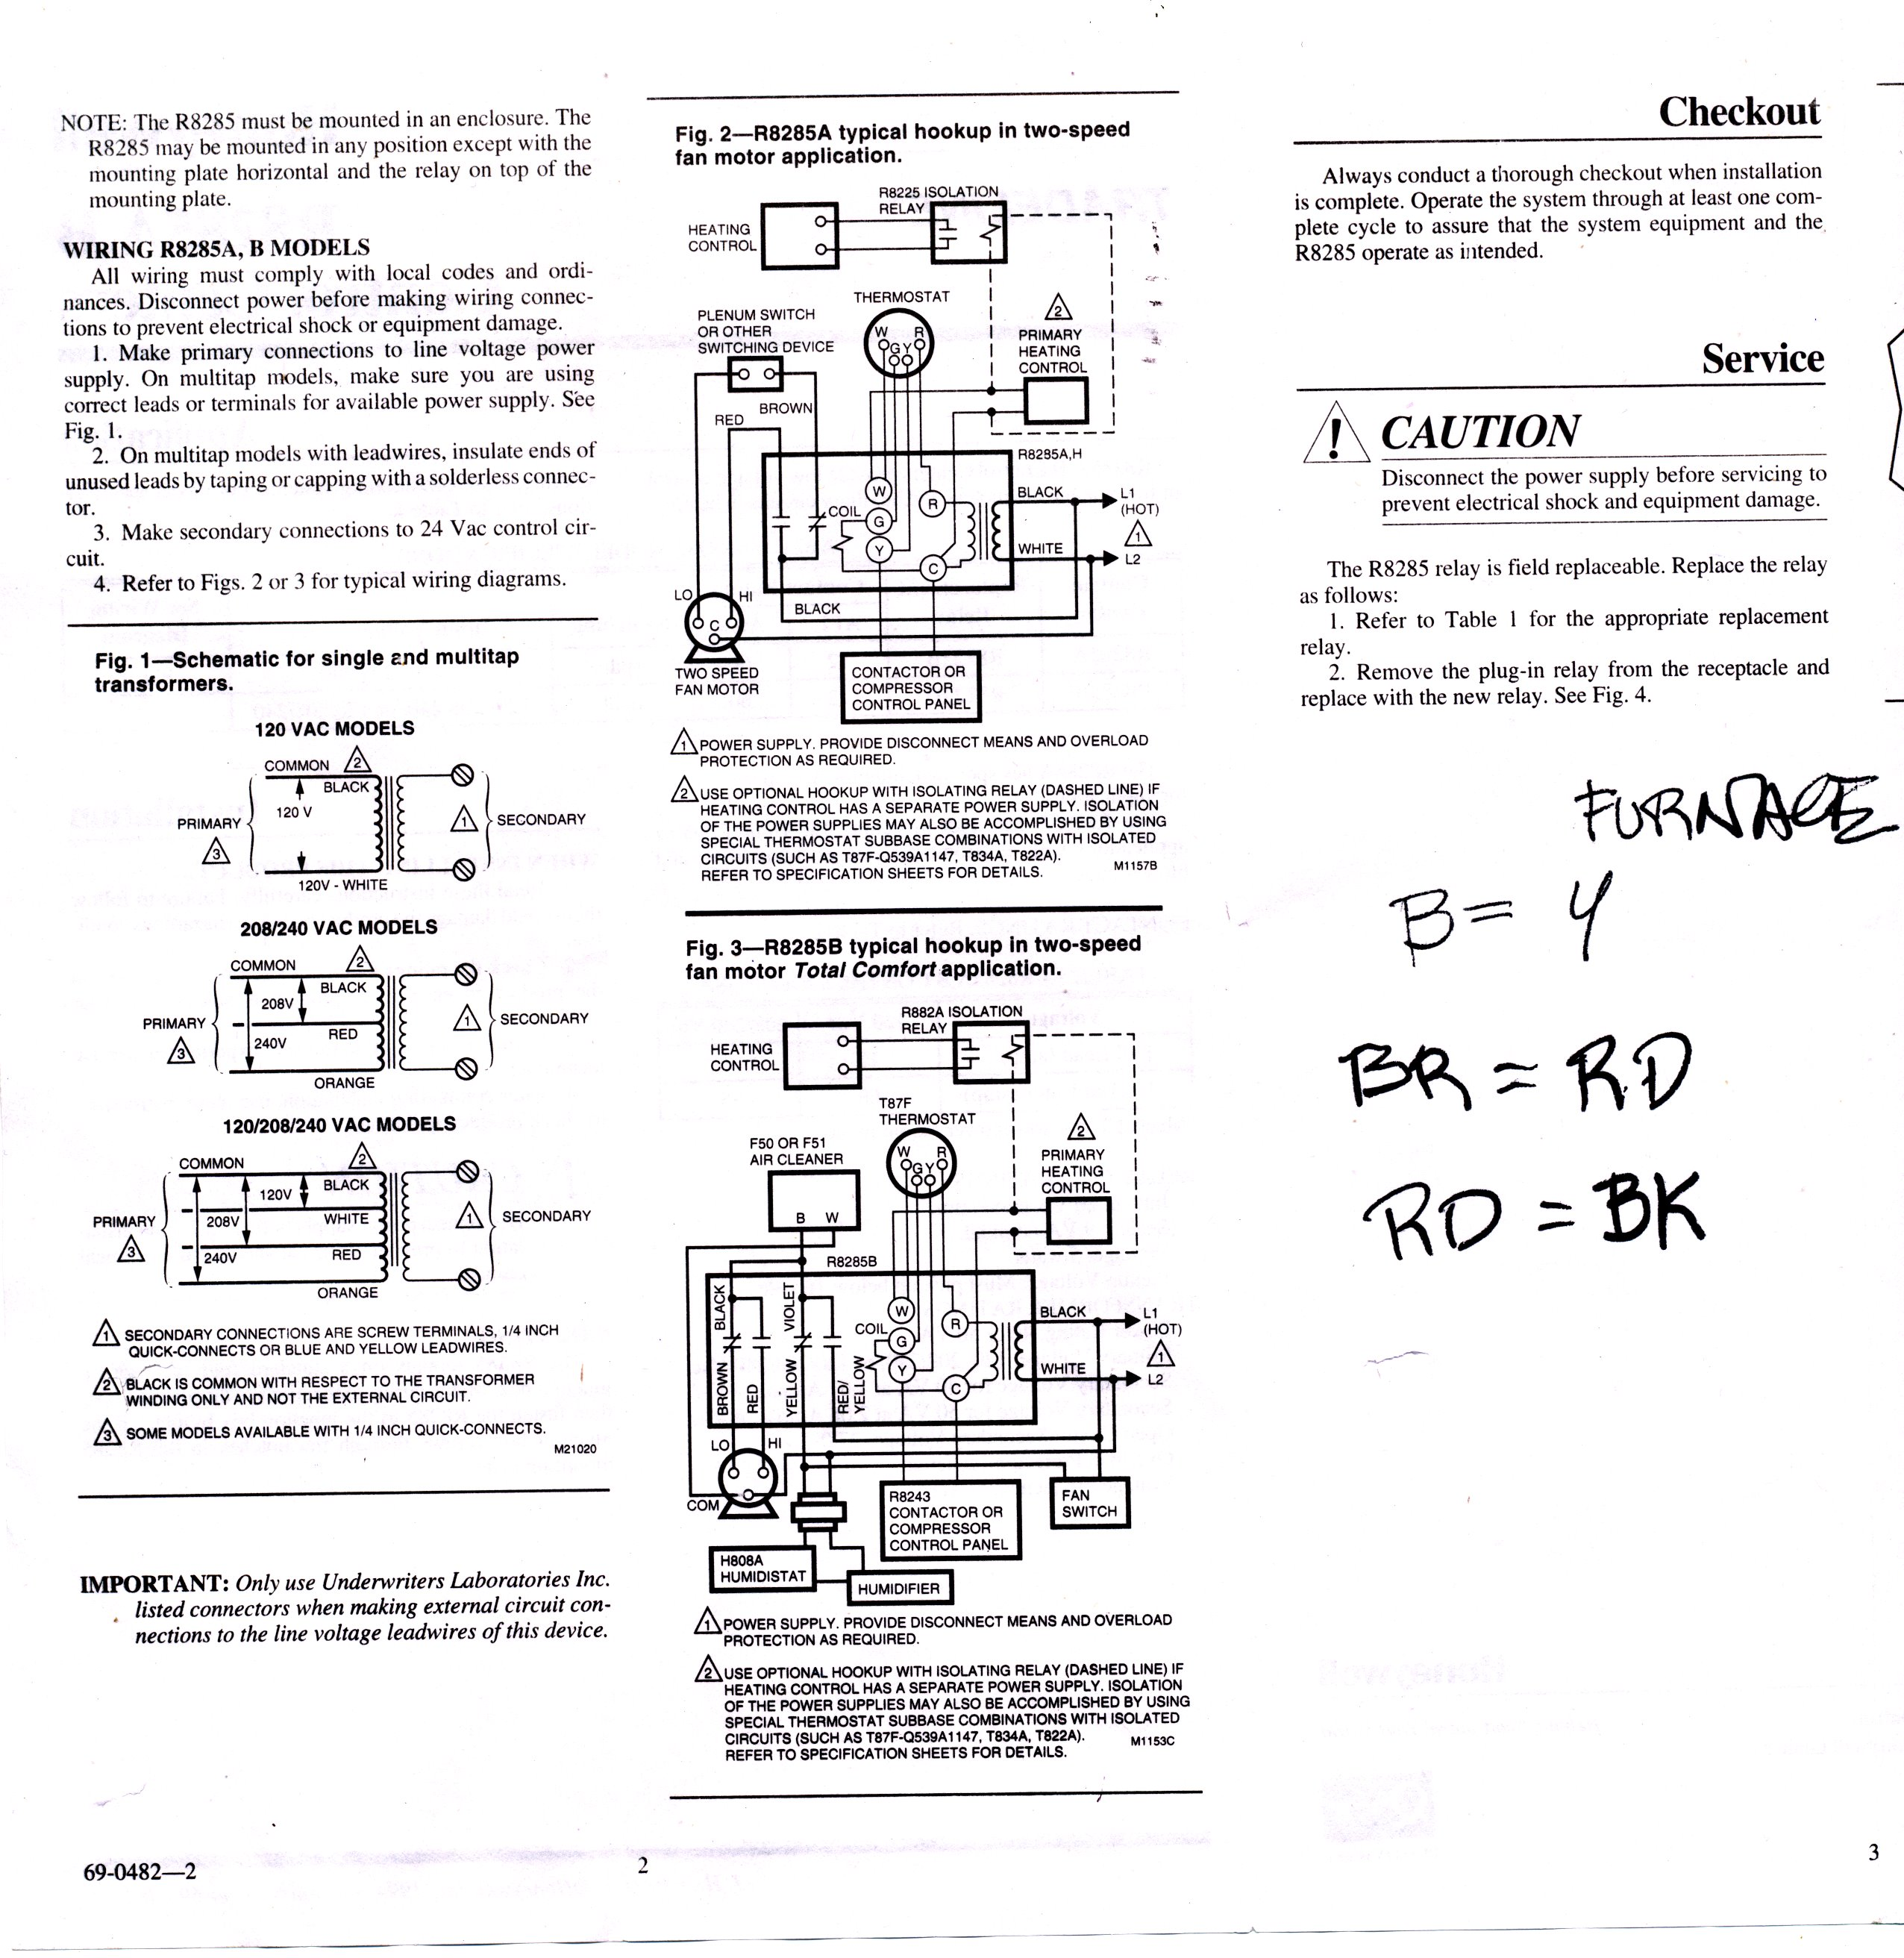 Furnace Limit Switch Wiring Diagram Great Design Of Intertherm Electric Thermostat Honeywell Fan 41 Older Relay